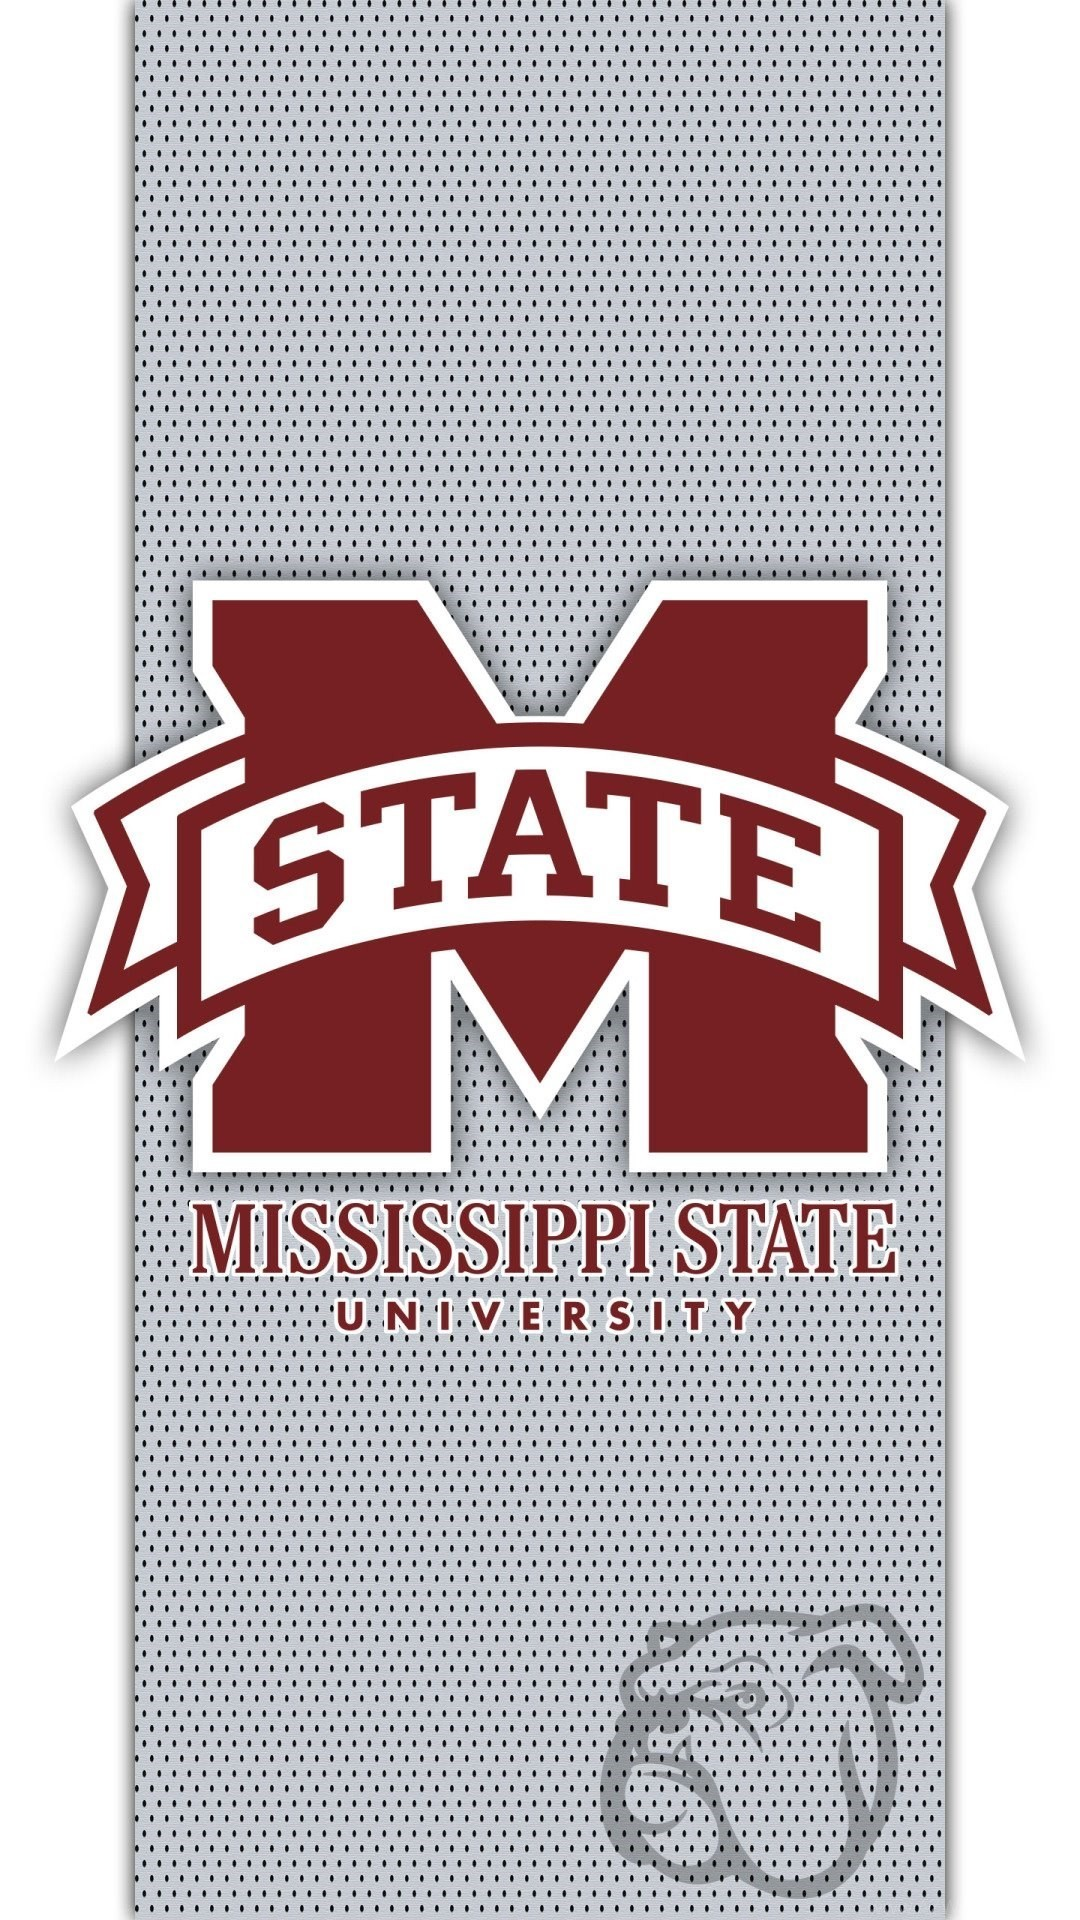 Alabama Football Iphone Wallpaper Mississippi State Wallpapers 183 ① Wallpapertag